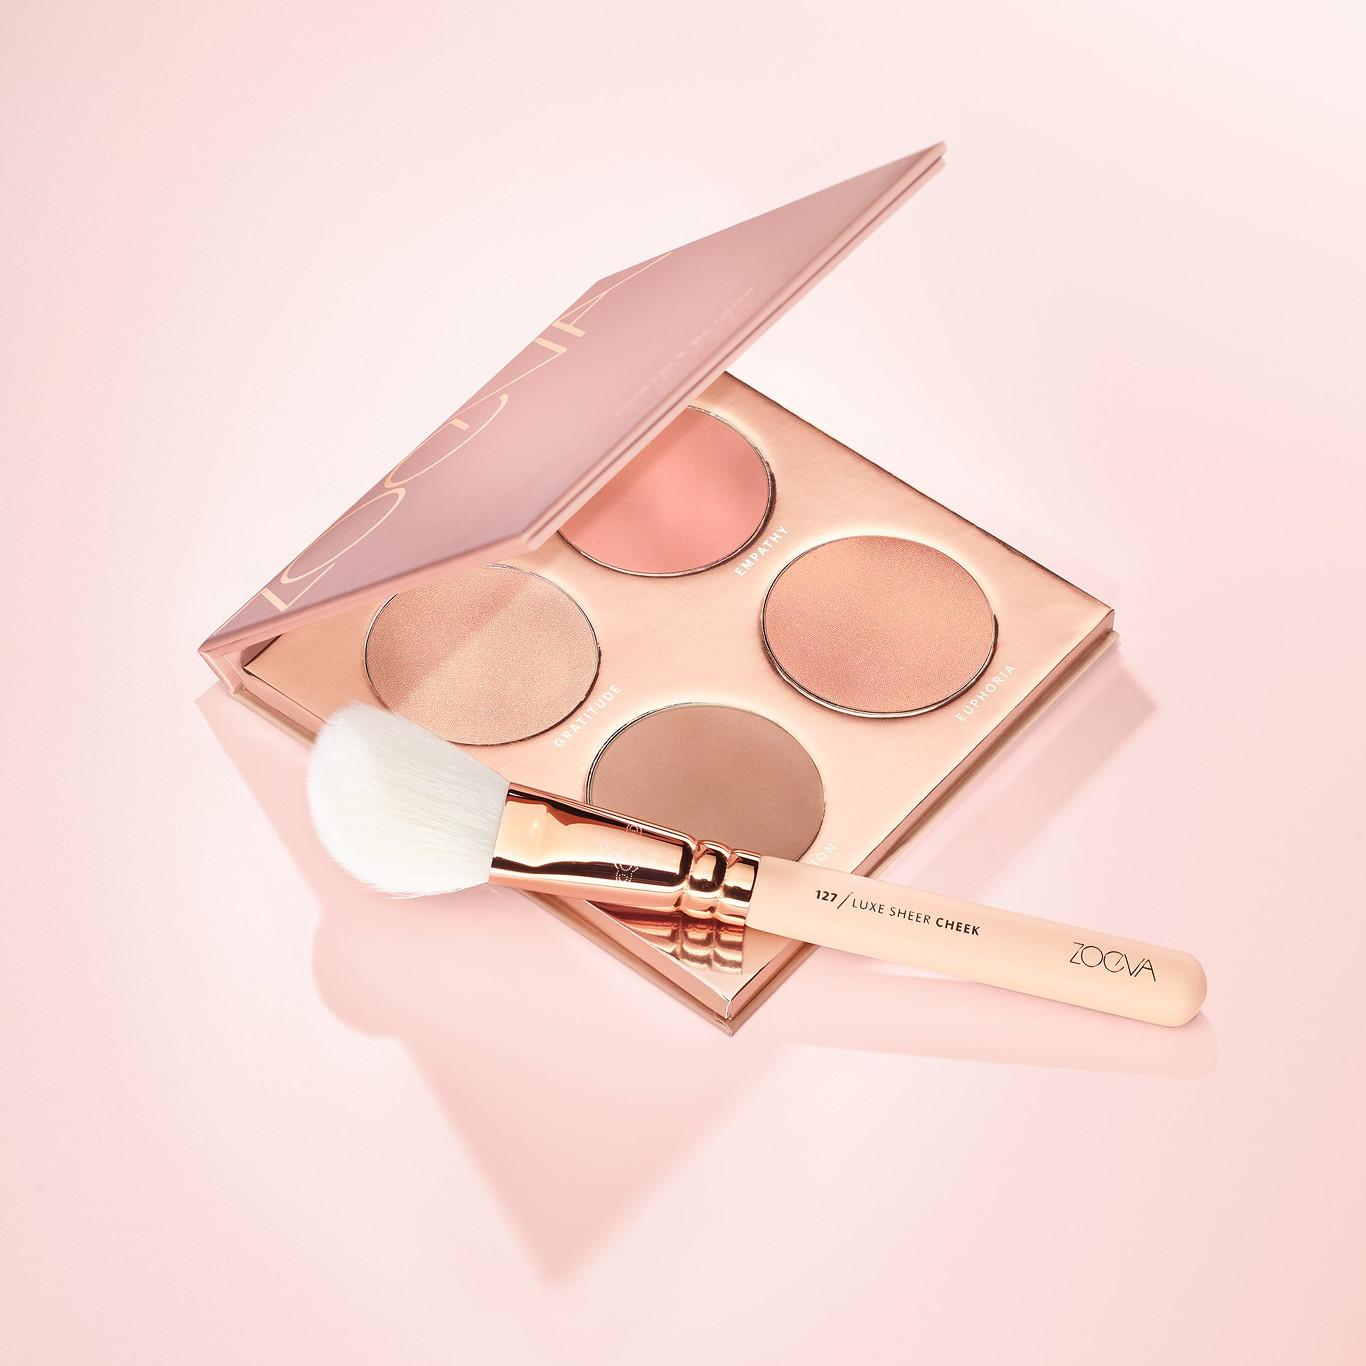 ZOEVA Cosmetics Together We Grow Face Palette Open With Brush